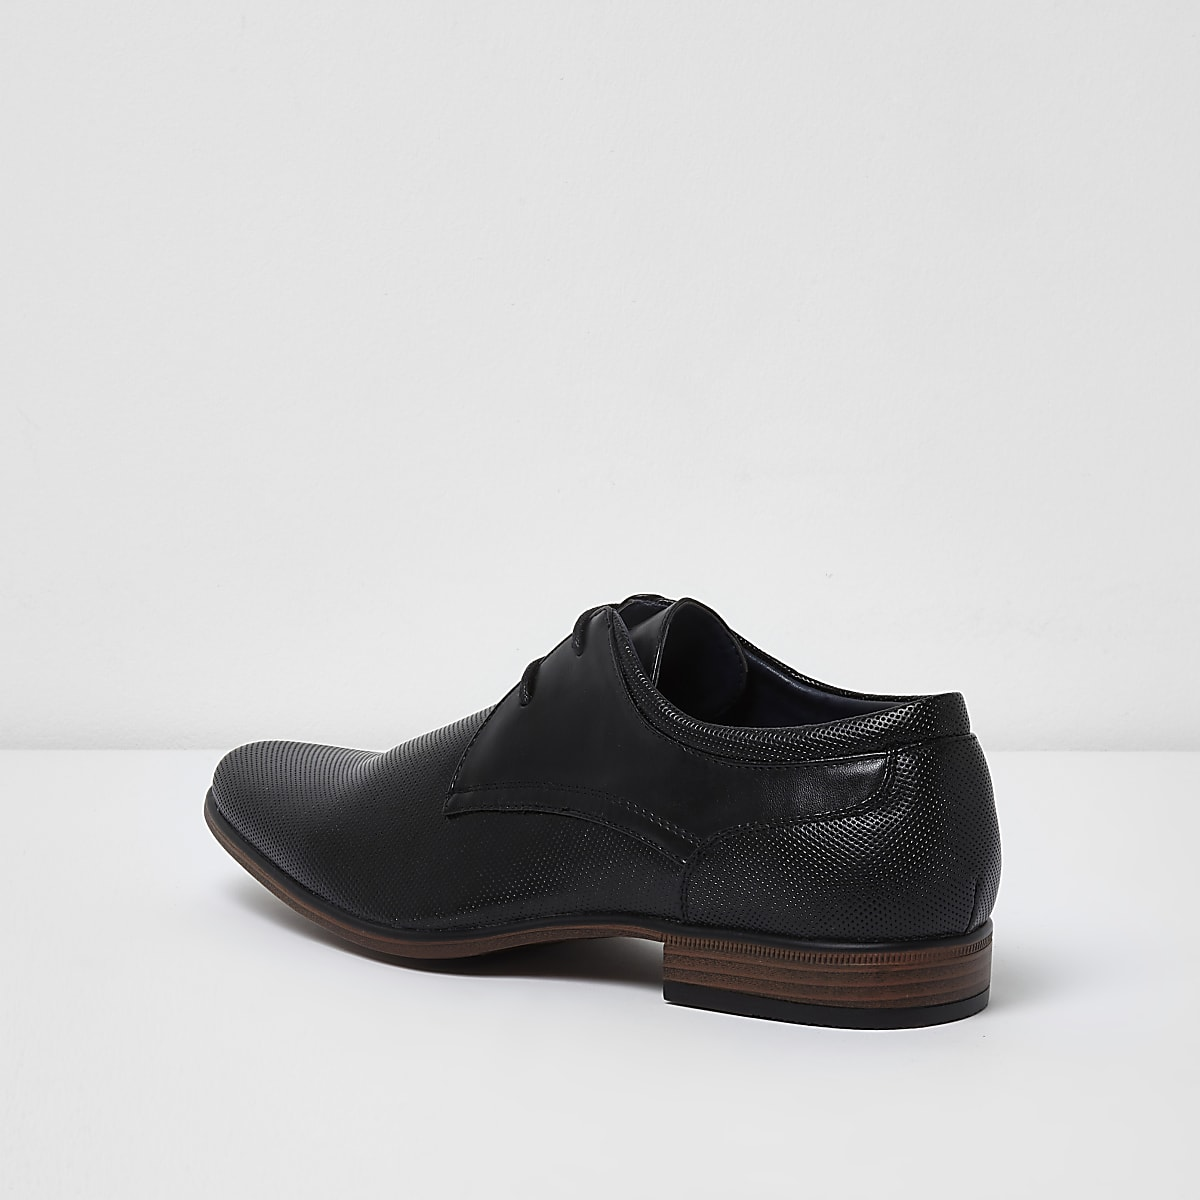 9f5ad563265 Black perforated formal shoes - Shoes - Shoes   Boots - men